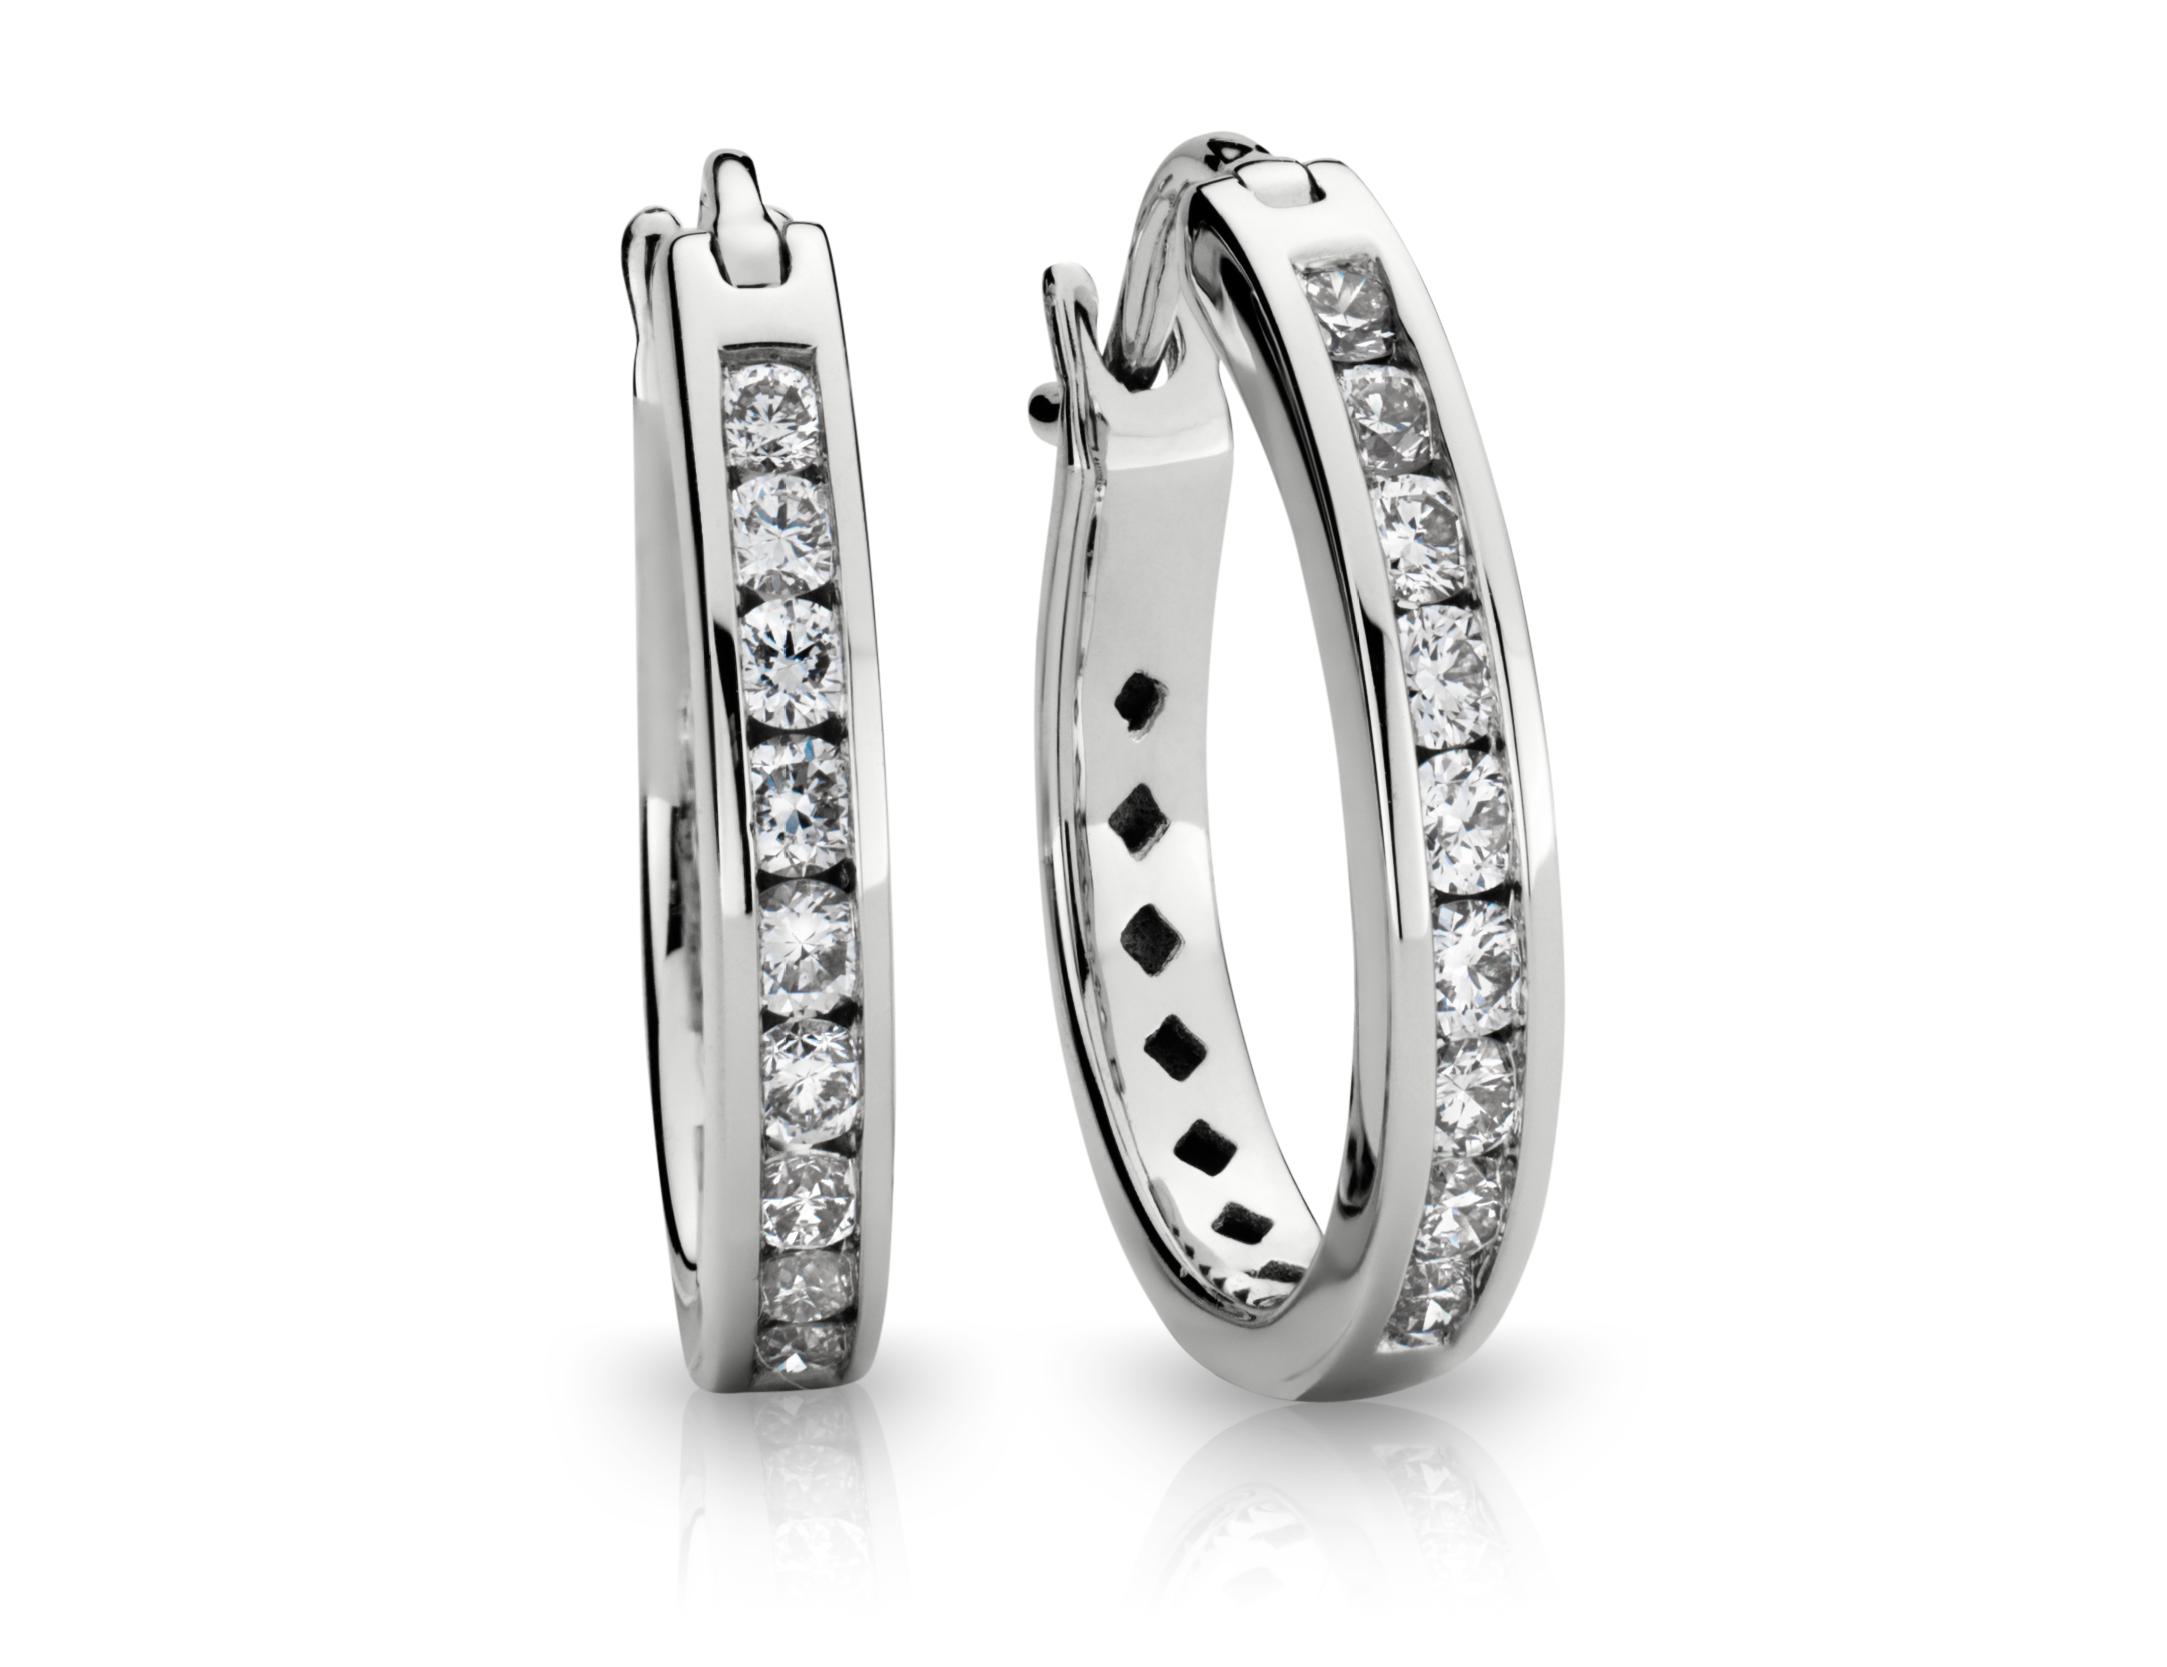 Channel-Set Hoop Diamond Earrings in 18k White Gold